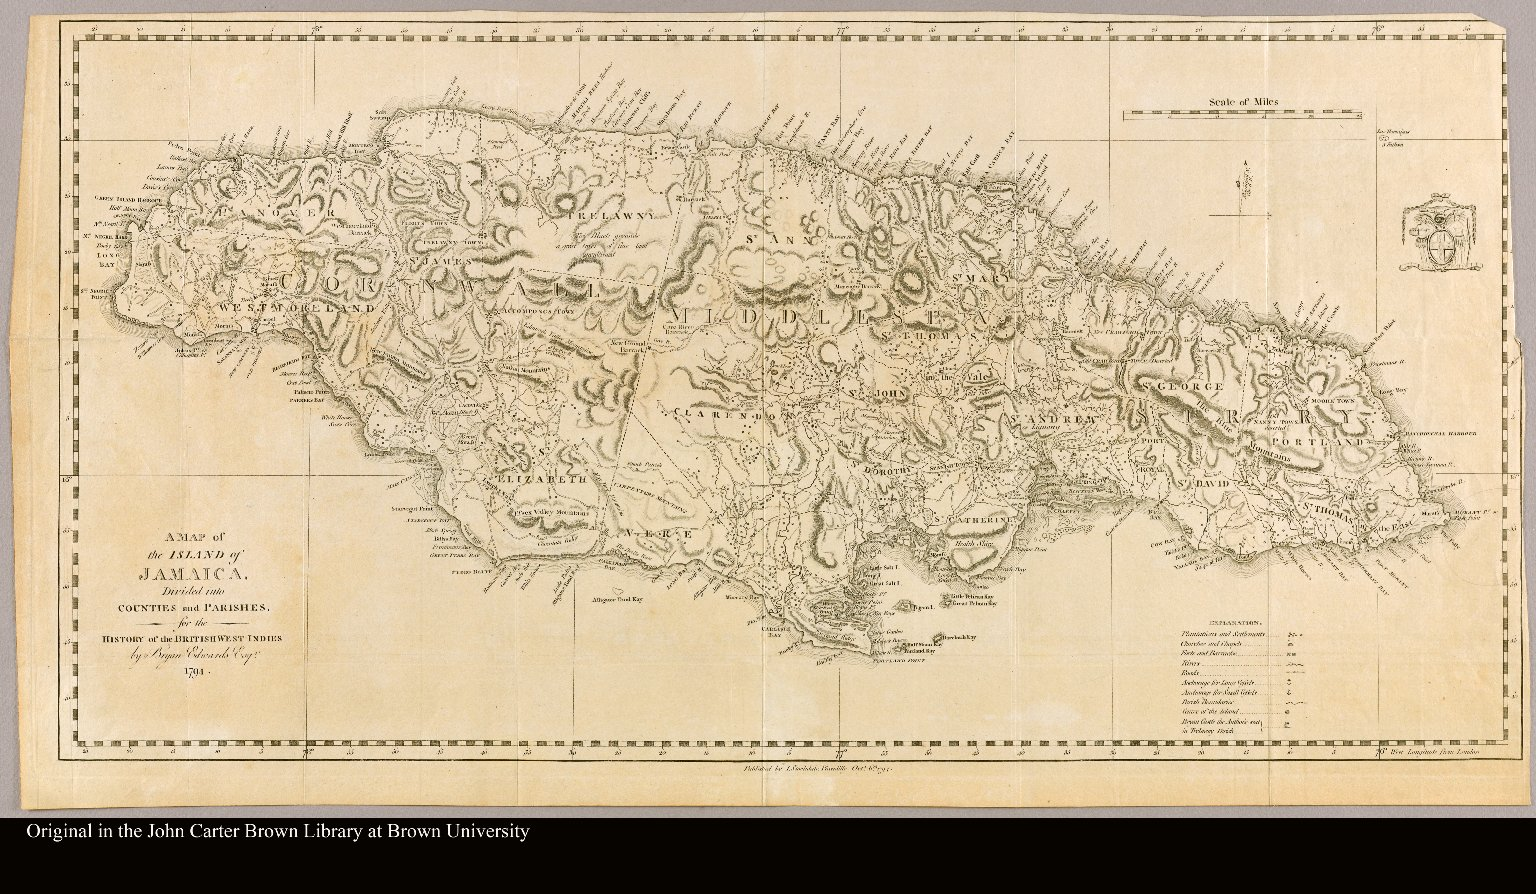 a map of the island of jamaica divided into counties and